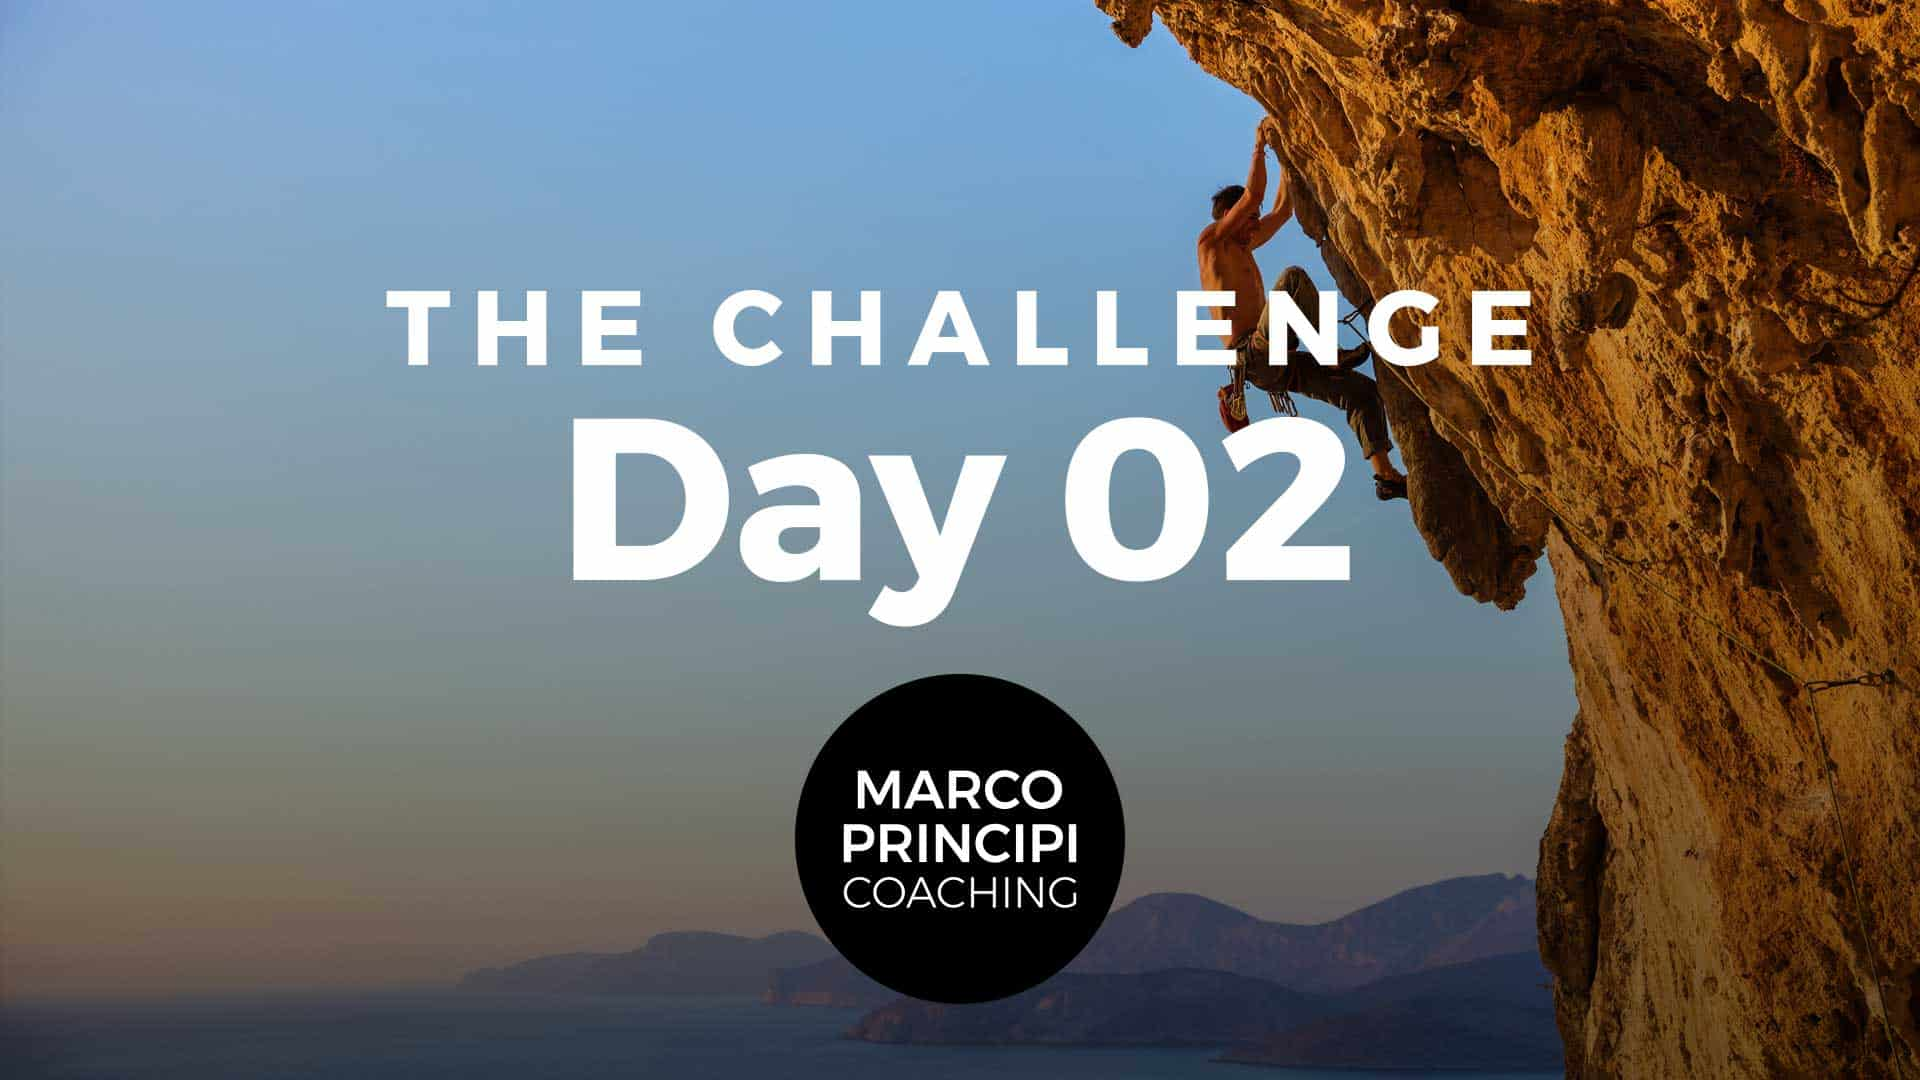 Marco Principi YT Cover The Challenge Day 002